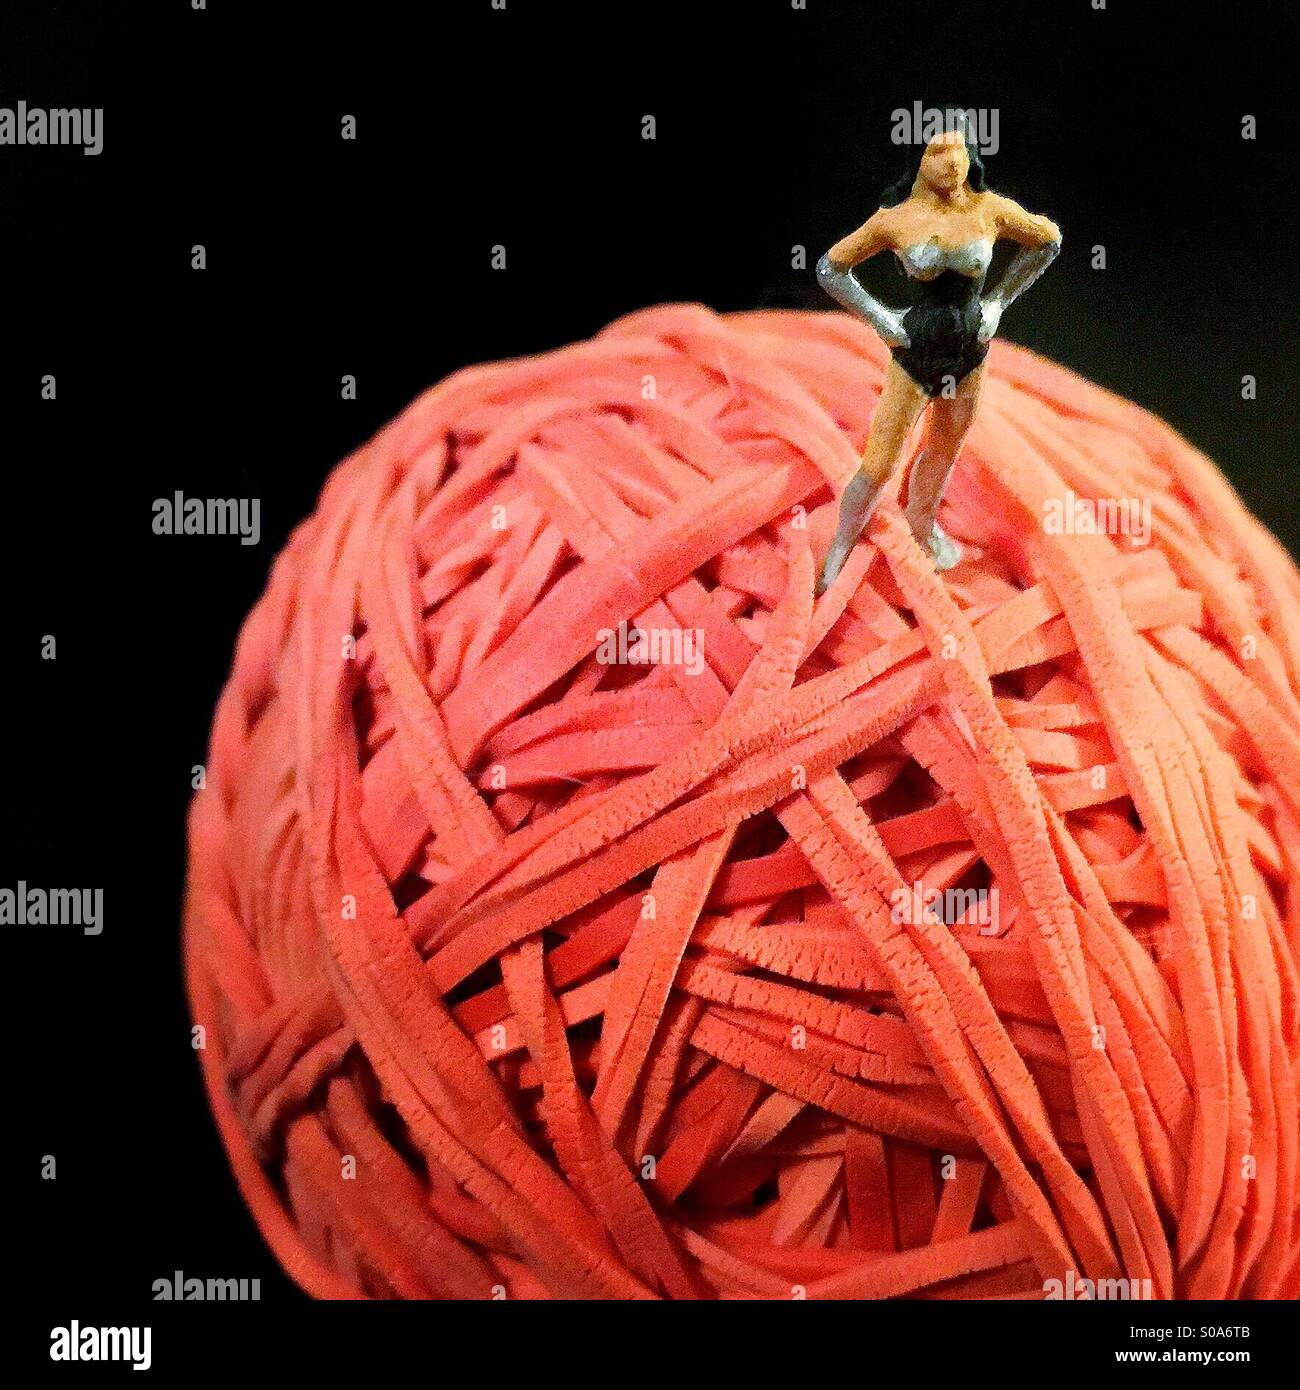 A small figure of a woman dressed like a superhero on top of a large ball made of red rubber bands - Stock Image